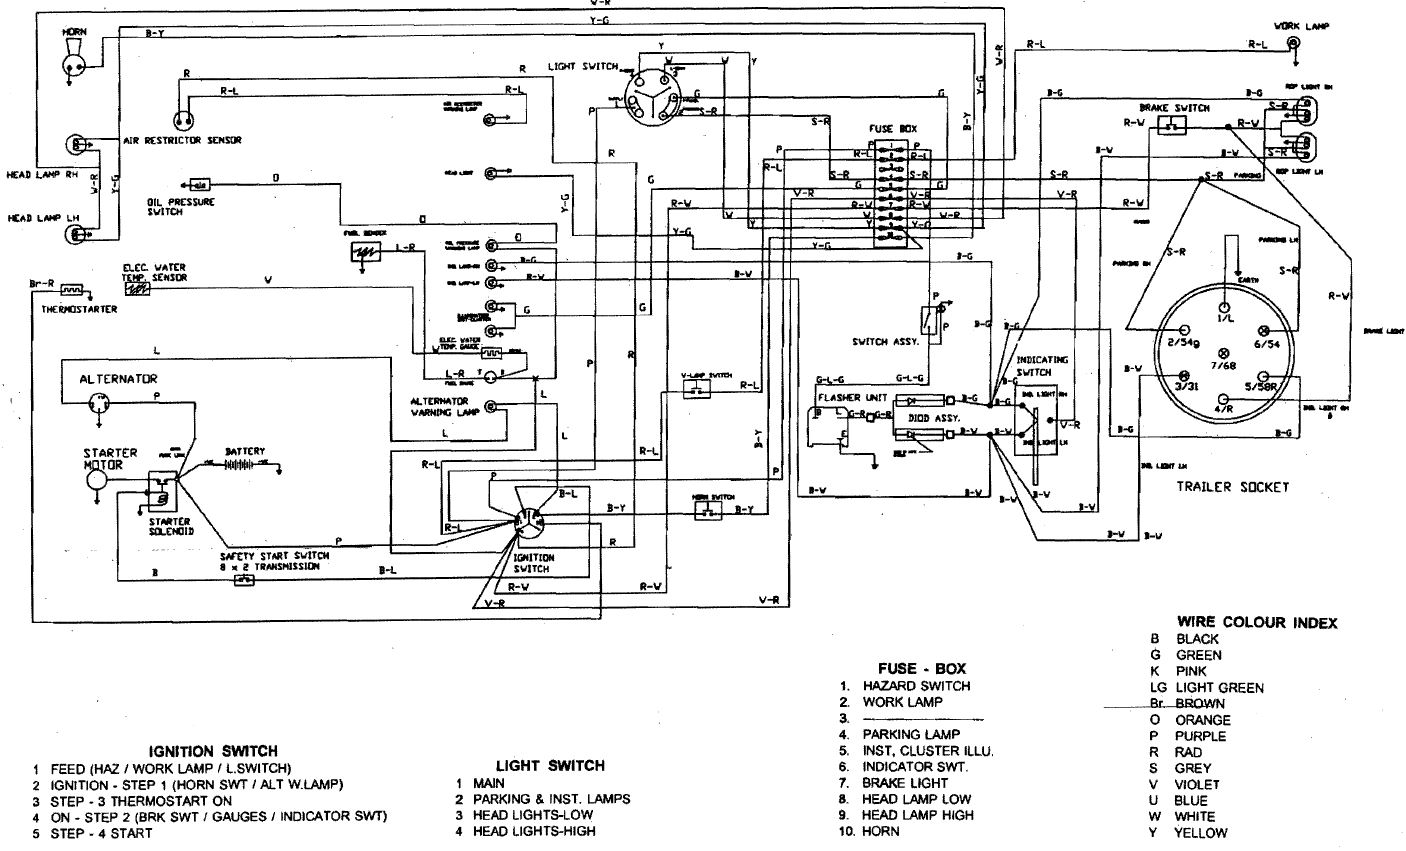 hight resolution of tractor electrical diagram wiring diagram inside 8n ford tractor electrical diagram tractor electrical diagram